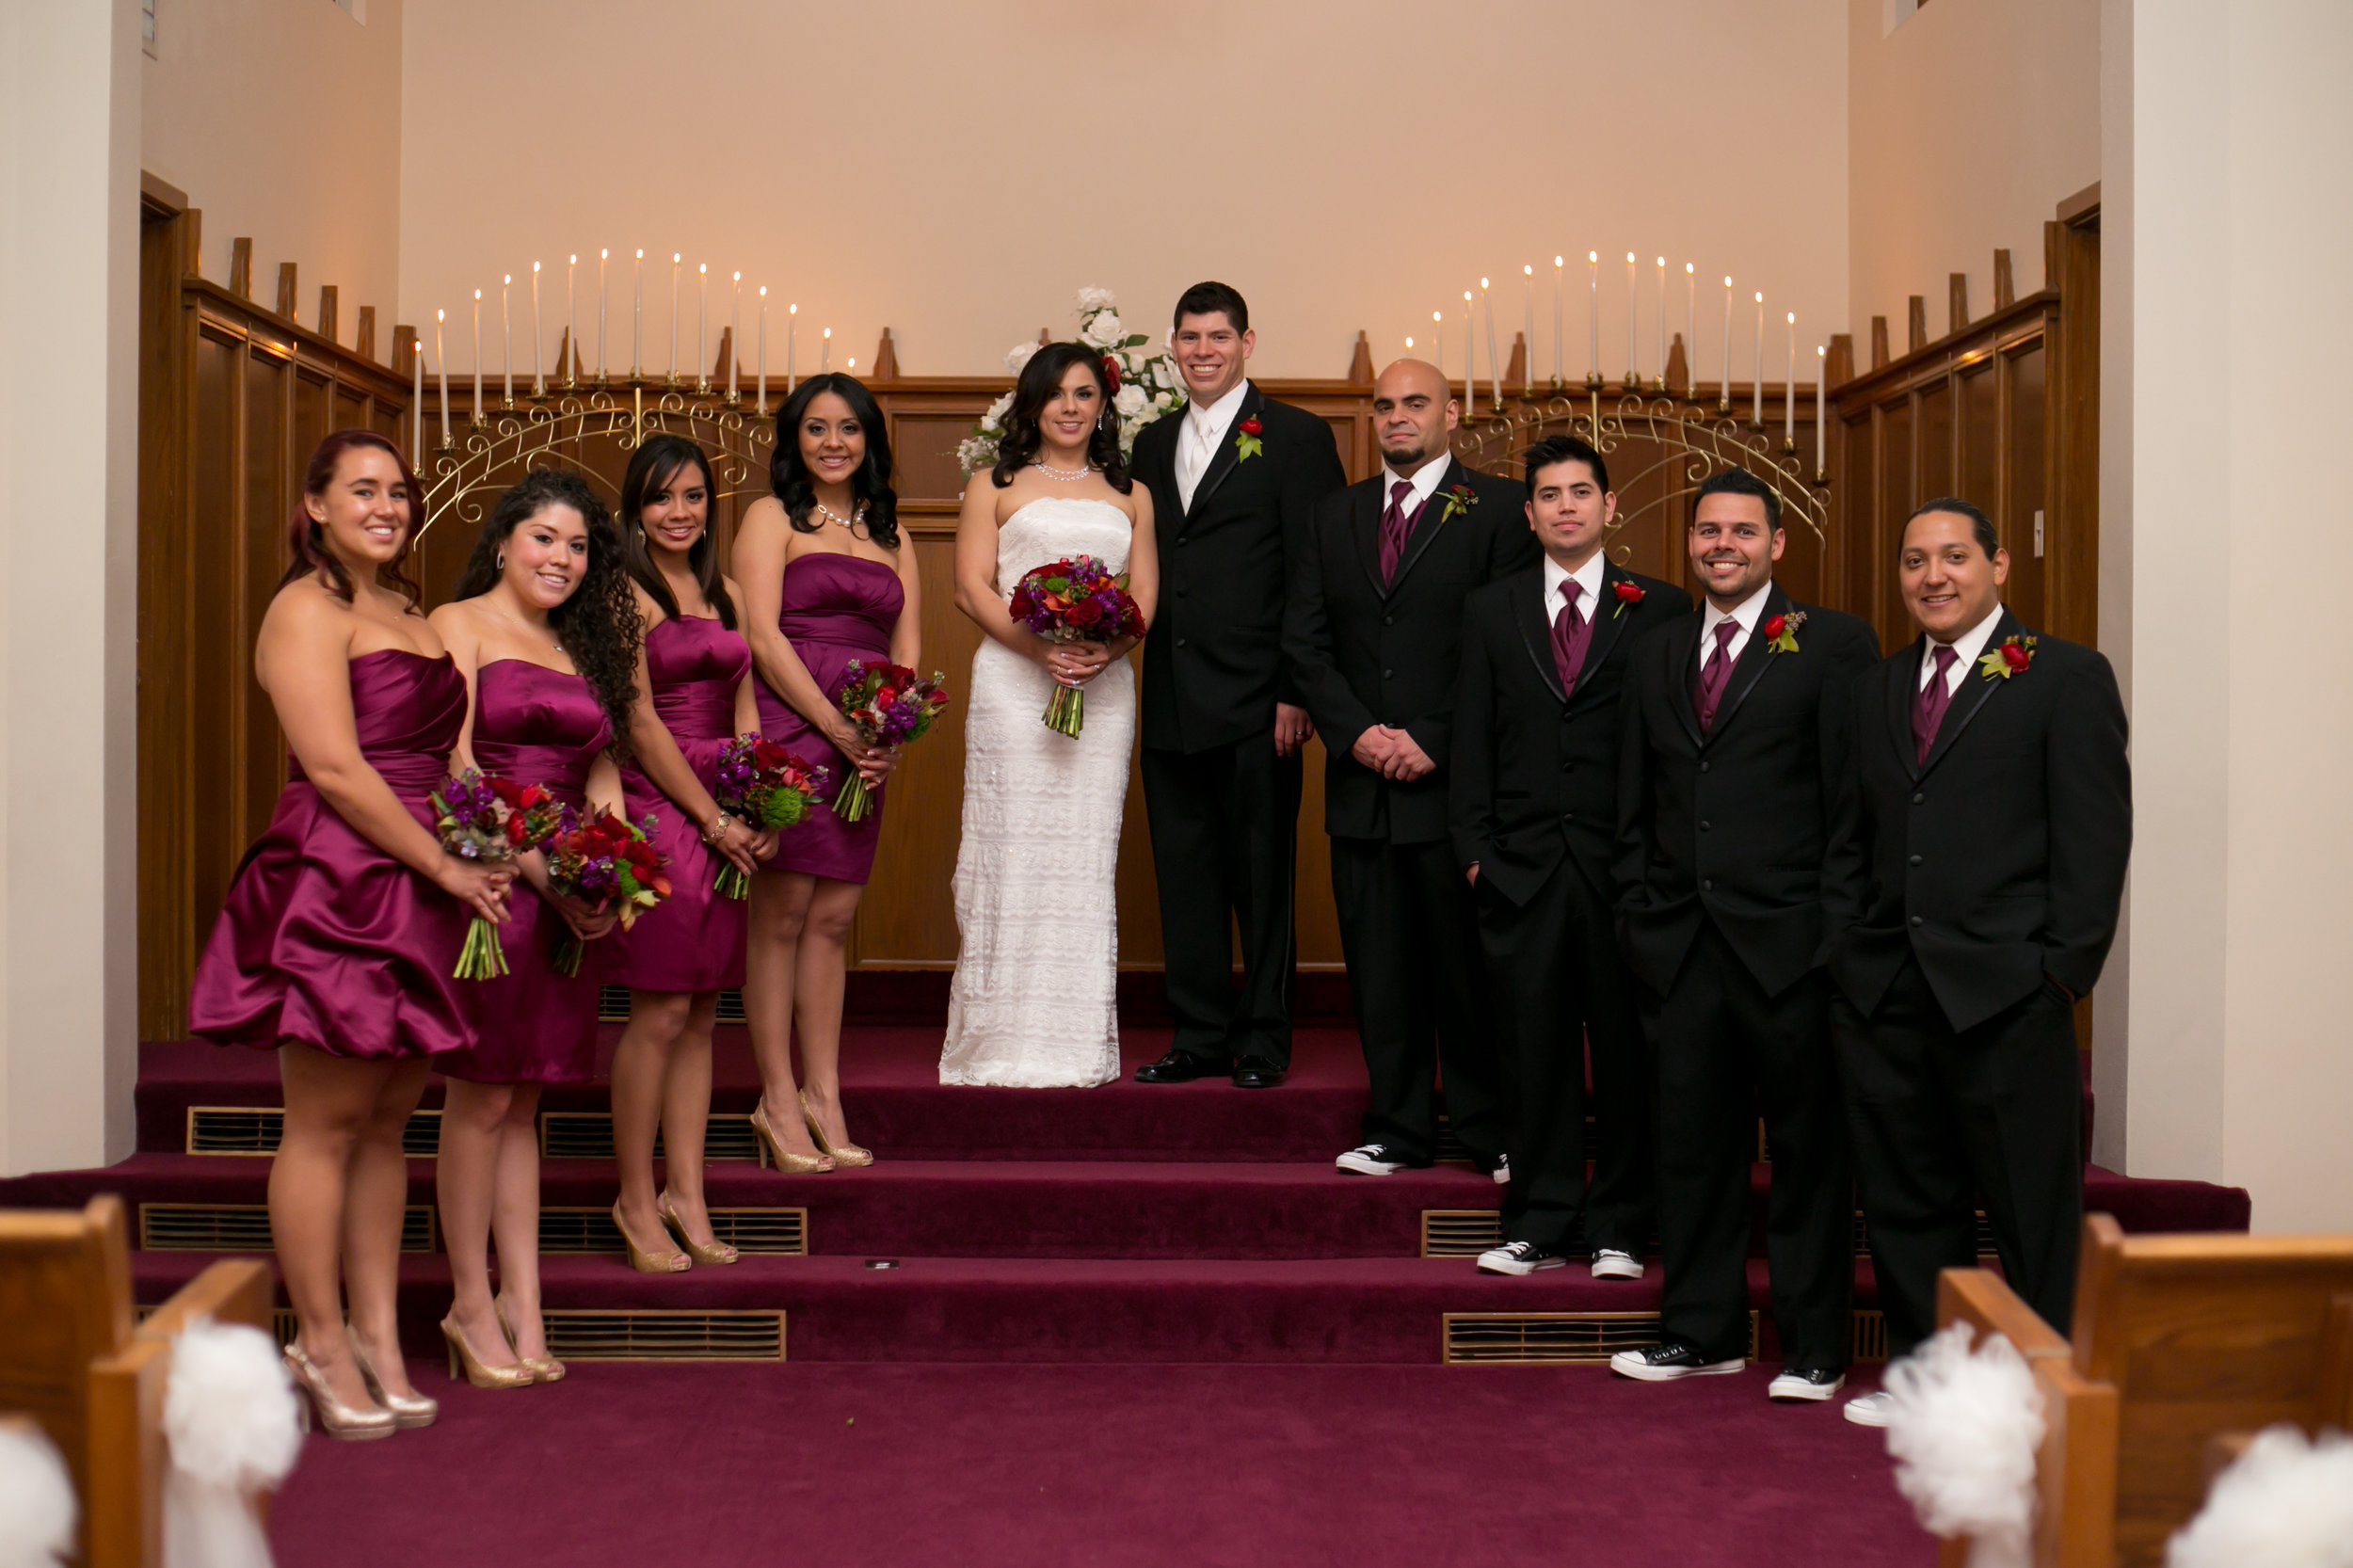 JMP2012-Gutierrez Wedding Ceremony (177).jpg